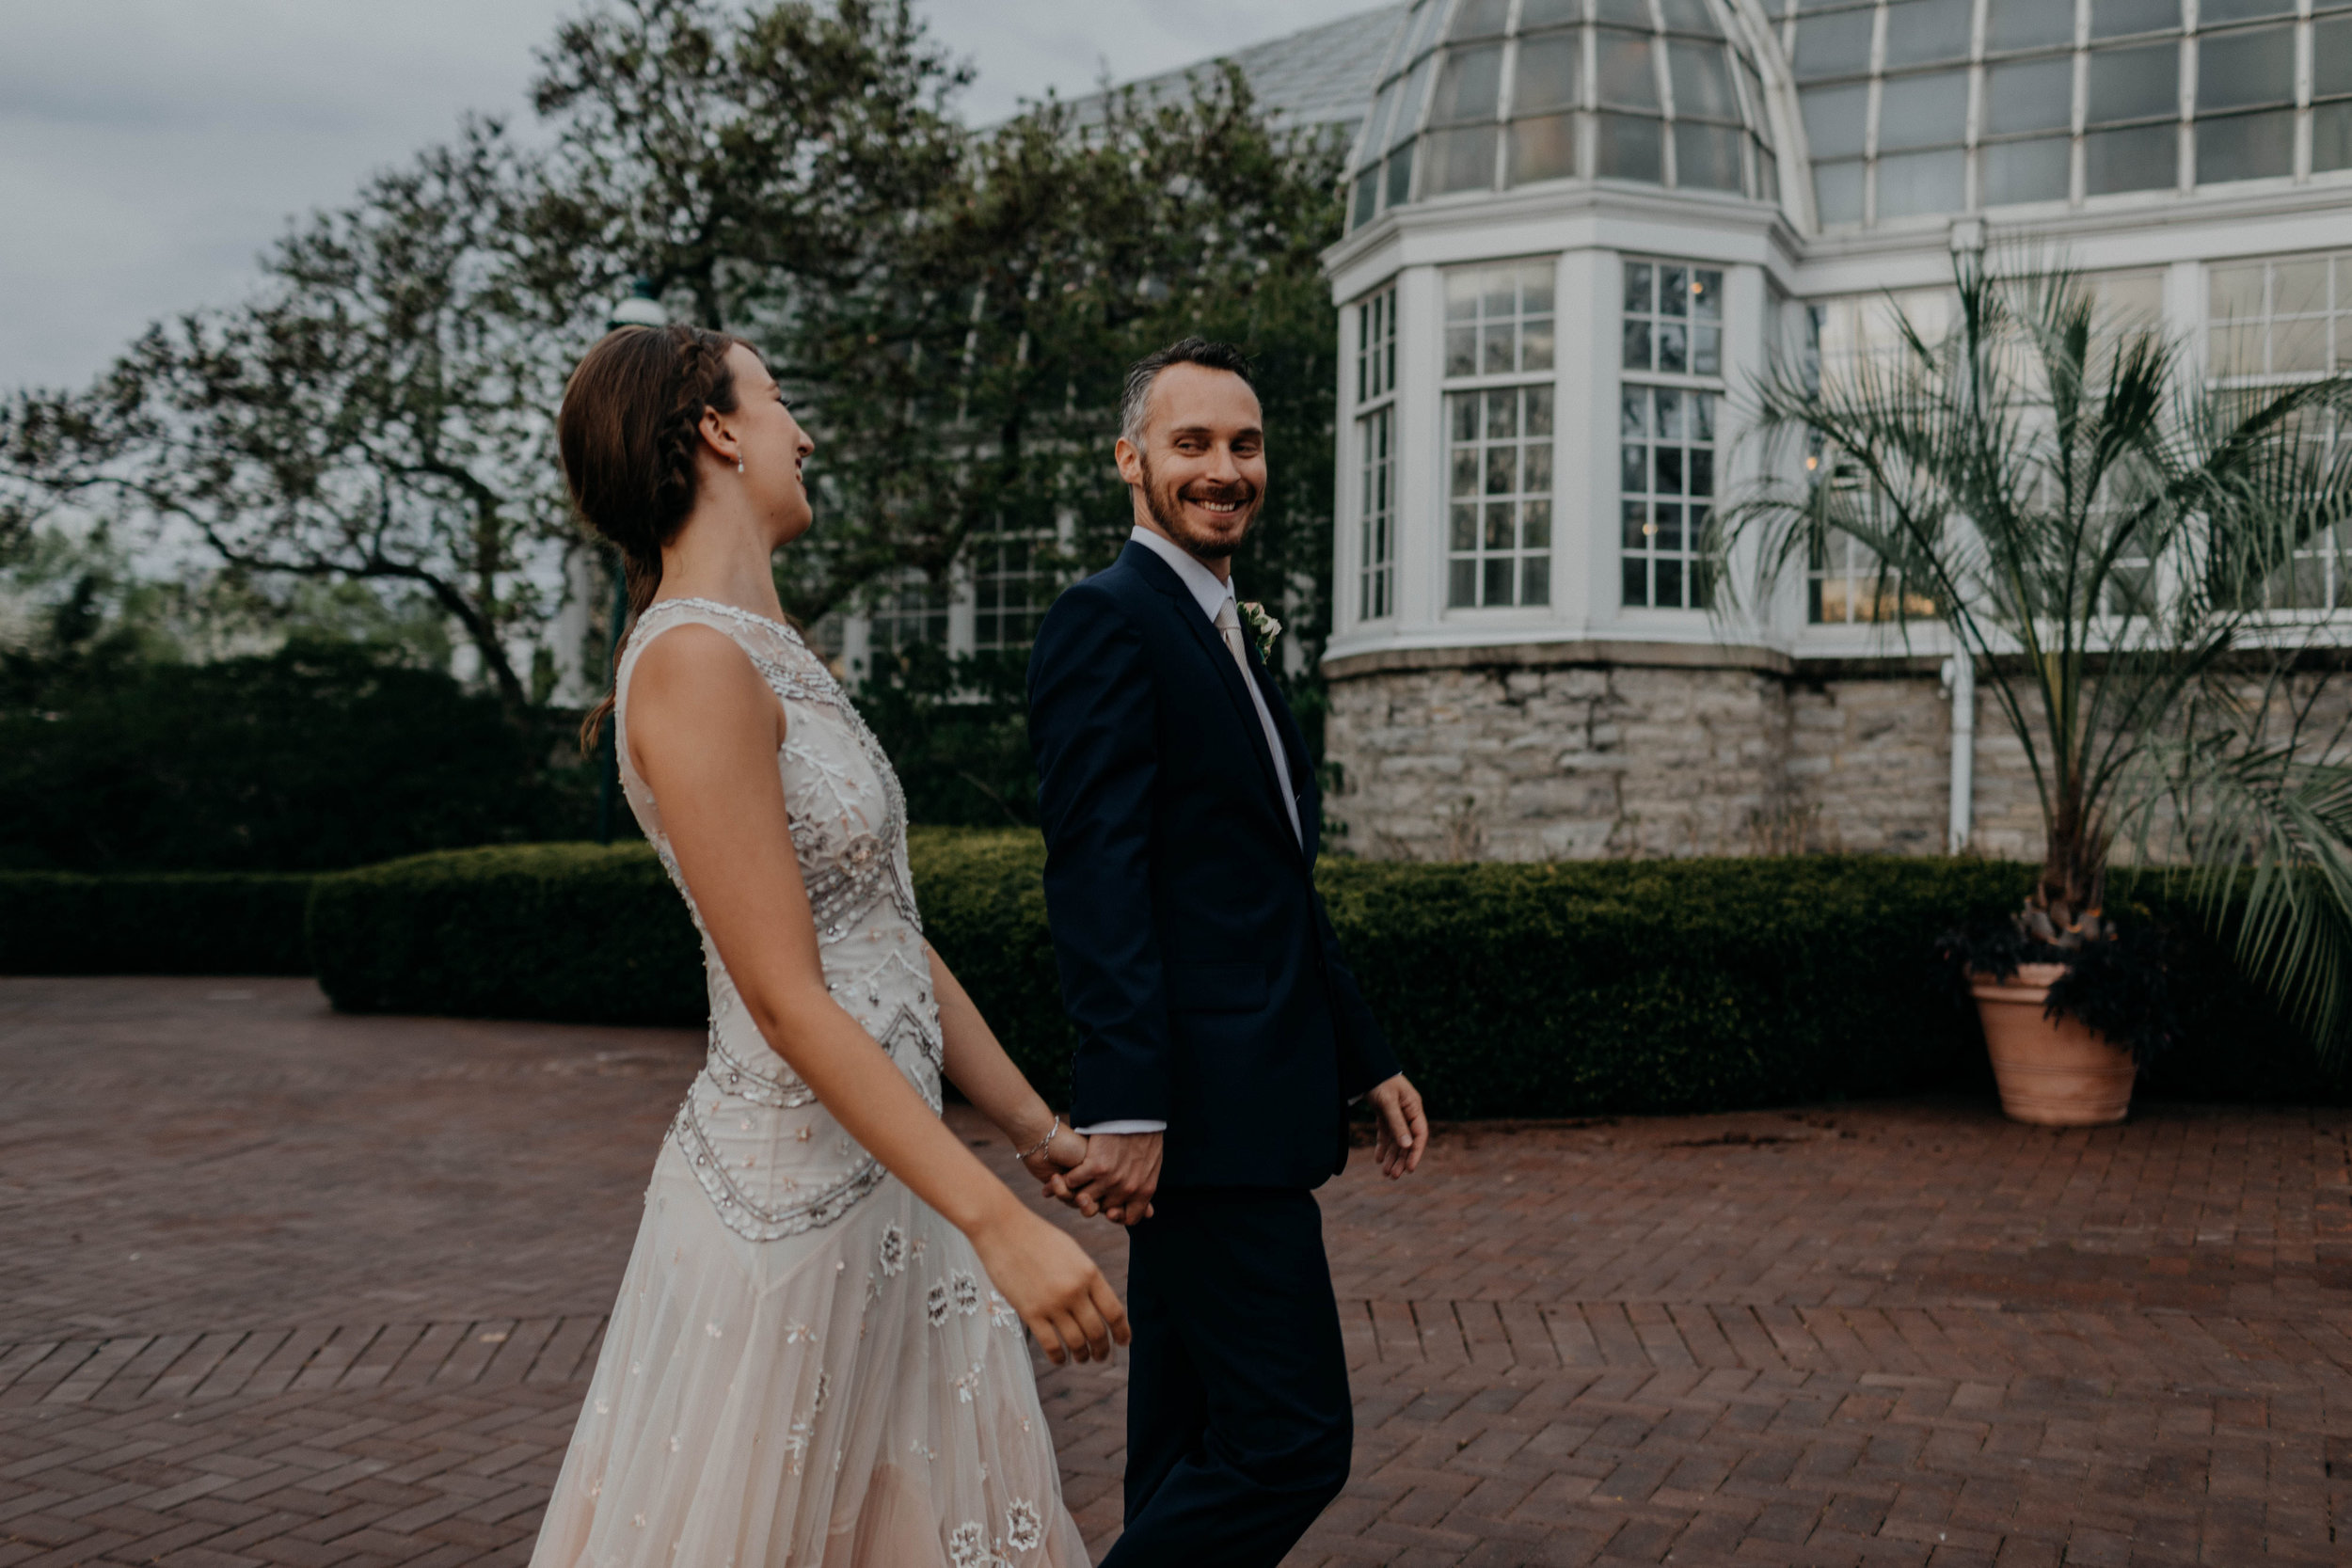 franklin park conservatory wedding columbus ohio wedding photographer grace e jones photography102.jpg